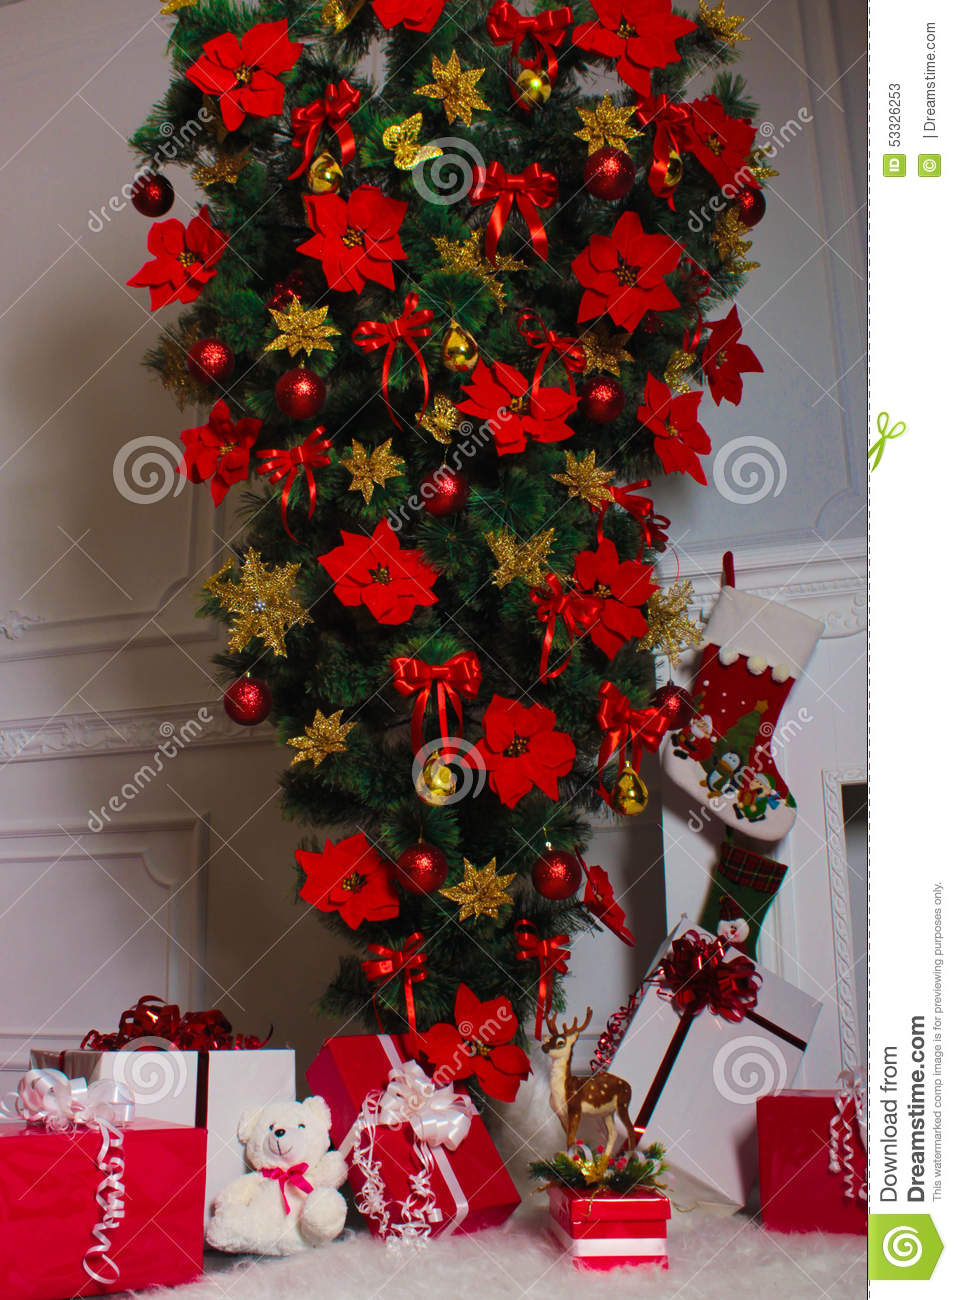 download happy new year new year wallpapers christmas stock image image of holiday